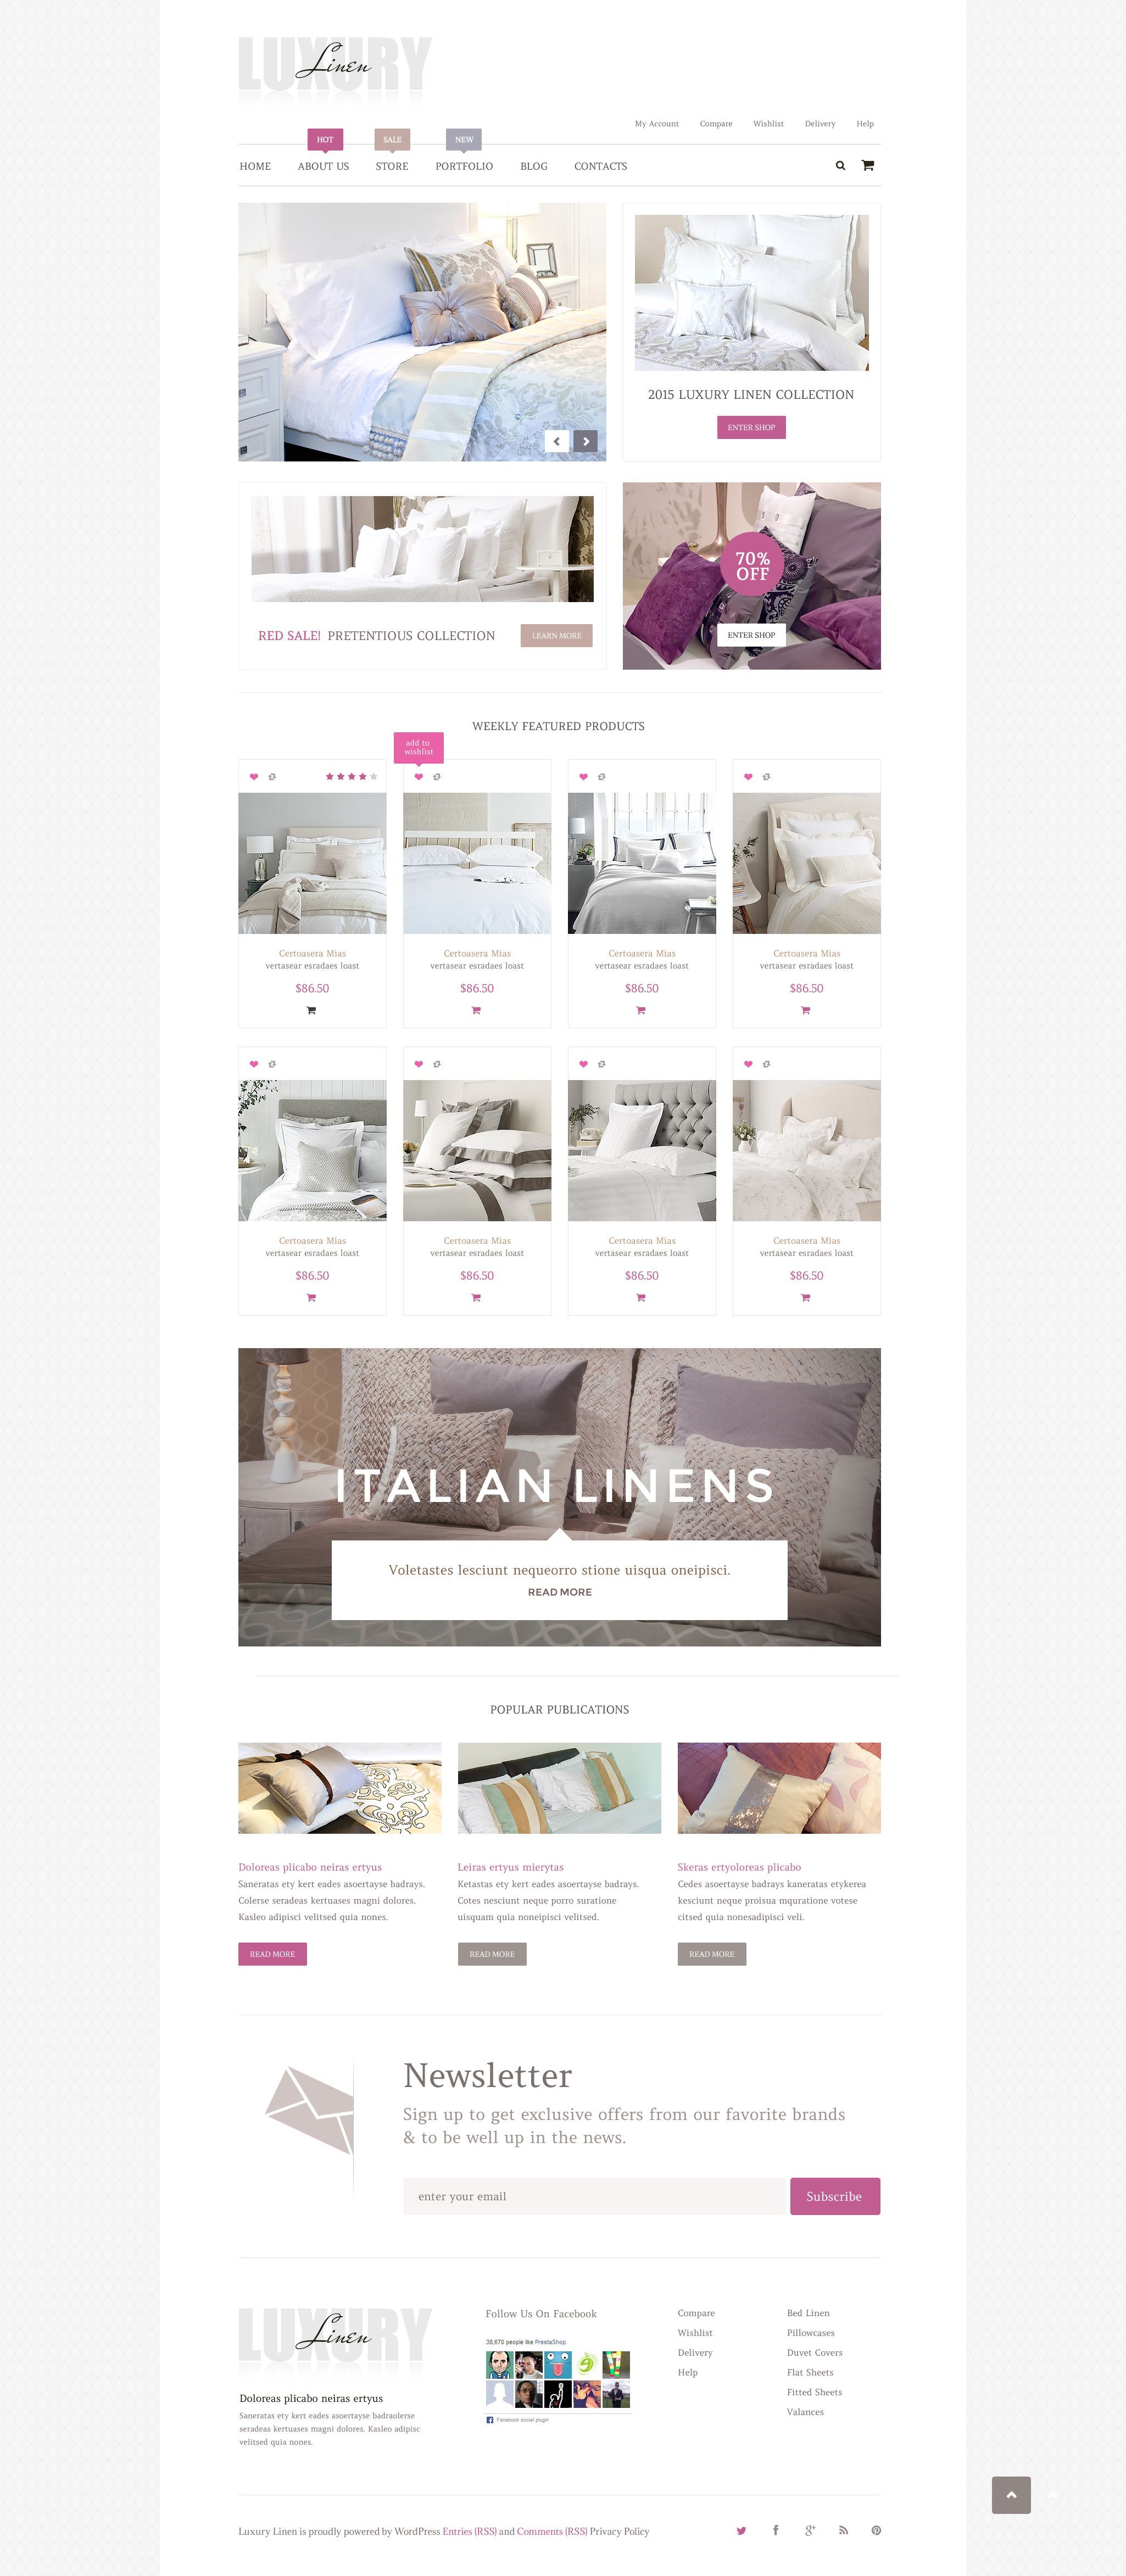 The Luxury Bed WooCommerce Design 53909, one of the best WooCommerce themes of its kind (wedding, most popular), also known as luxury bed WooCommerce template, linen WooCommerce template, duvet WooCommerce template, covers WooCommerce template, pillars WooCommerce template, bedding WooCommerce template, kitchen WooCommerce template, bath WooCommerce template, brand WooCommerce template, silk WooCommerce template, wool WooCommerce template, syntetic and related with luxury bed, linen, duvet, covers, pillars, bedding, kitchen, bath, brand, silk, wool, syntetic, etc.